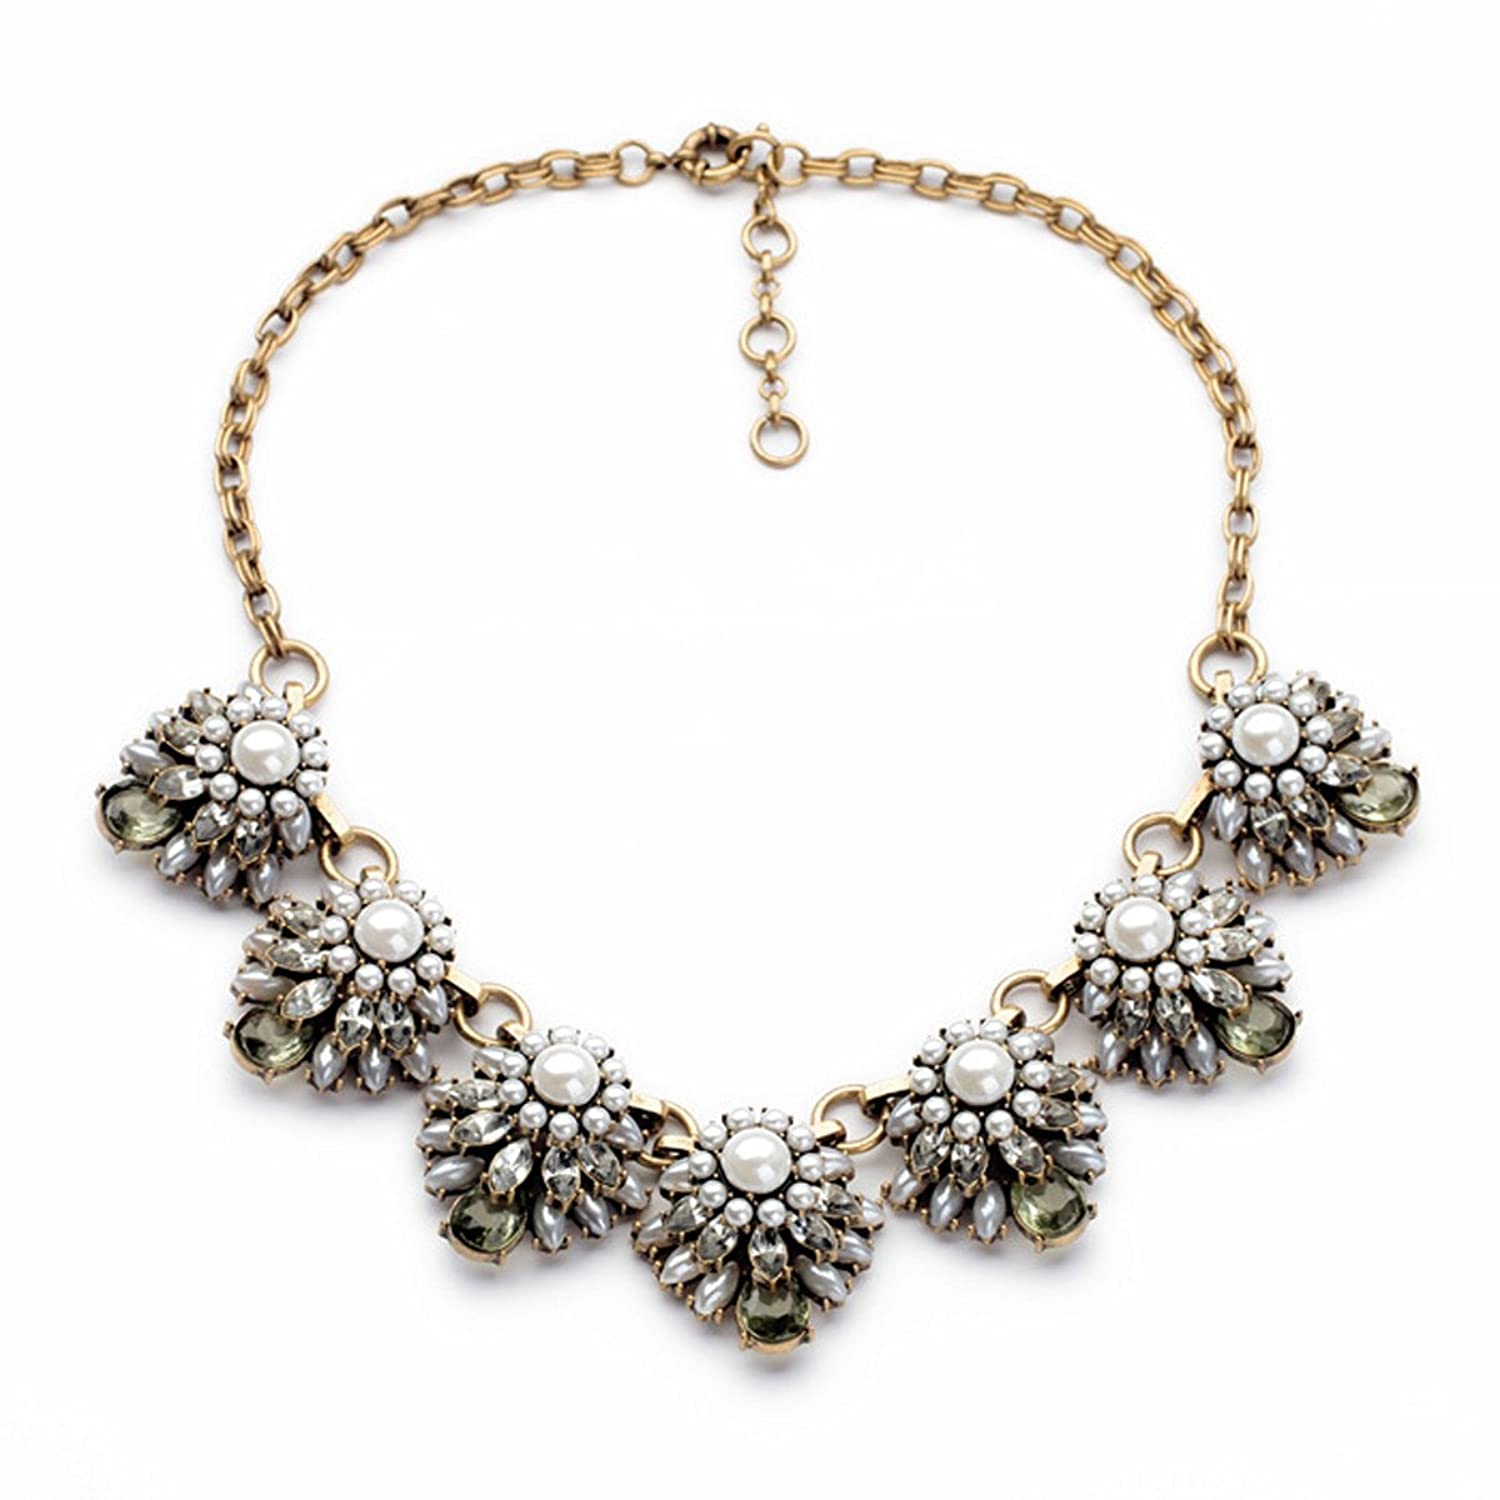 Charmlight Jewelry Popular Vintage Silver Tone Flowers Wild Collar Fashion Necklace Xl00933 wild flowers